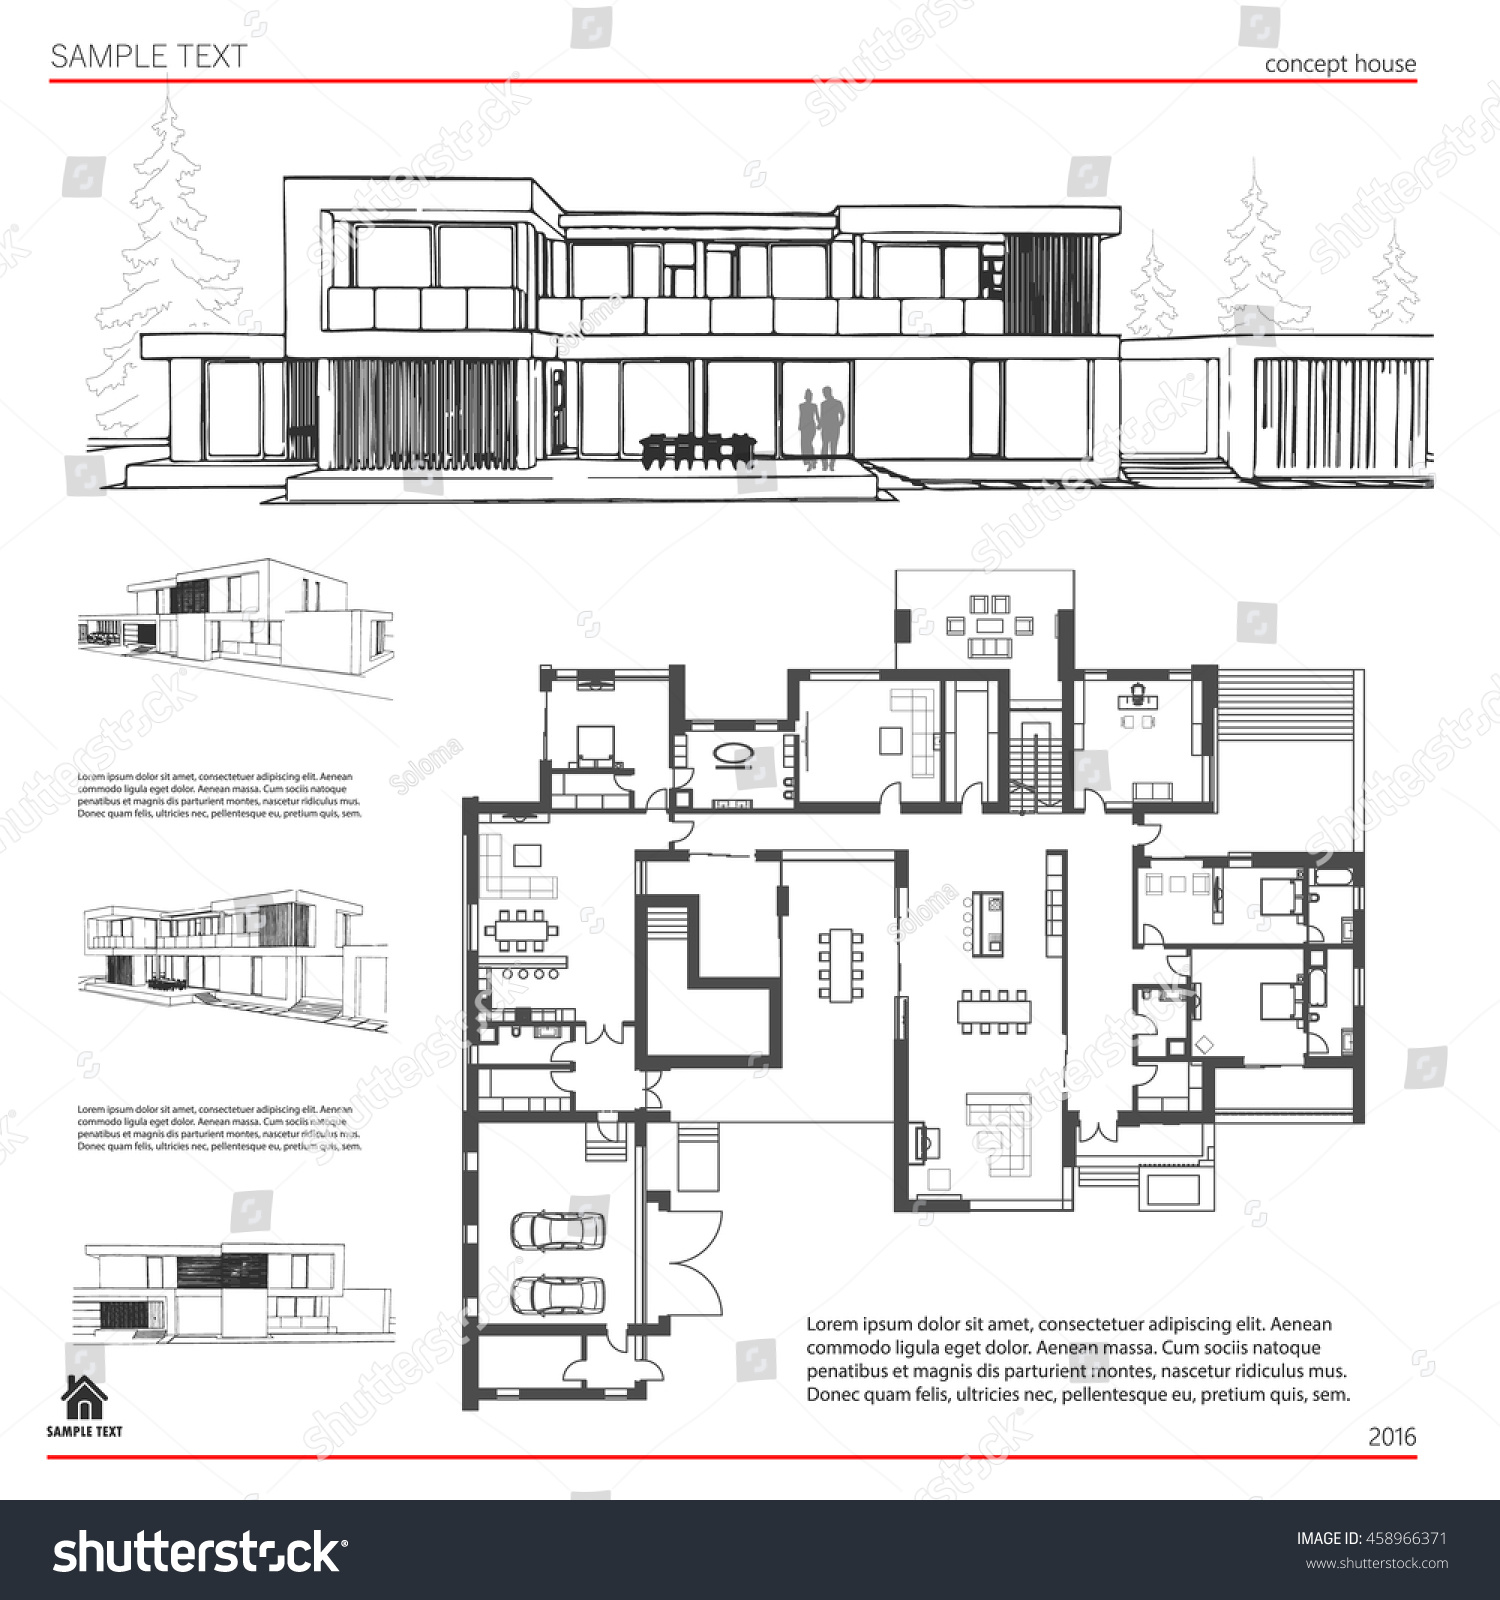 Wireframe Blueprint Drawing 3 D Building House Stock Vector ...